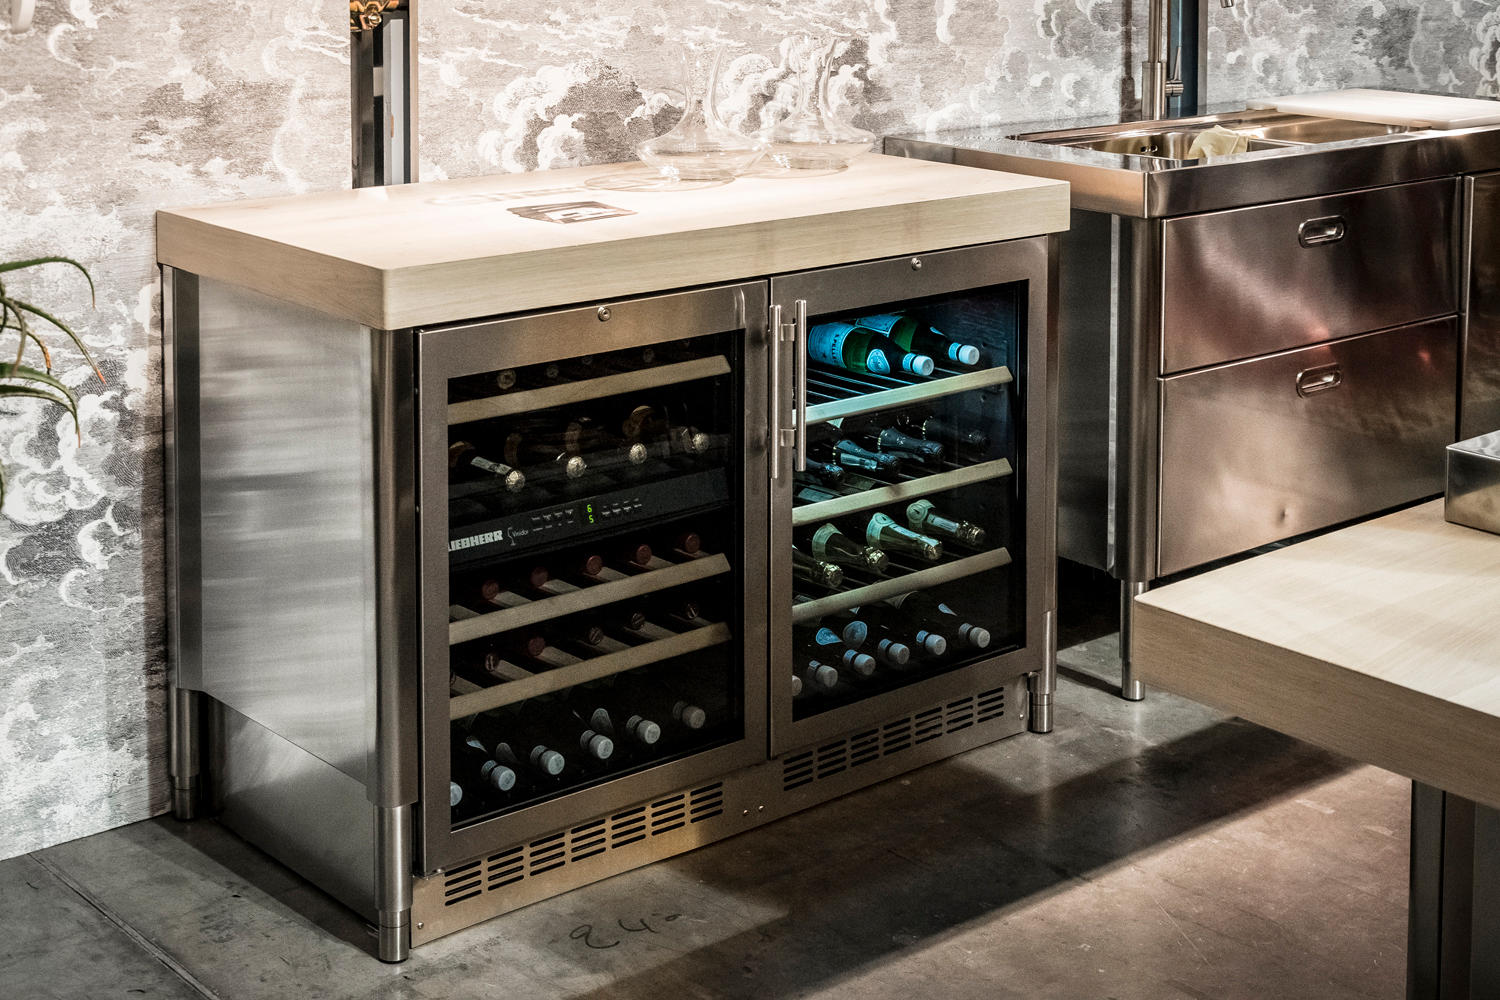 WINE COOLER 70 KITCHENS Wine Coolers From ALPES INOX